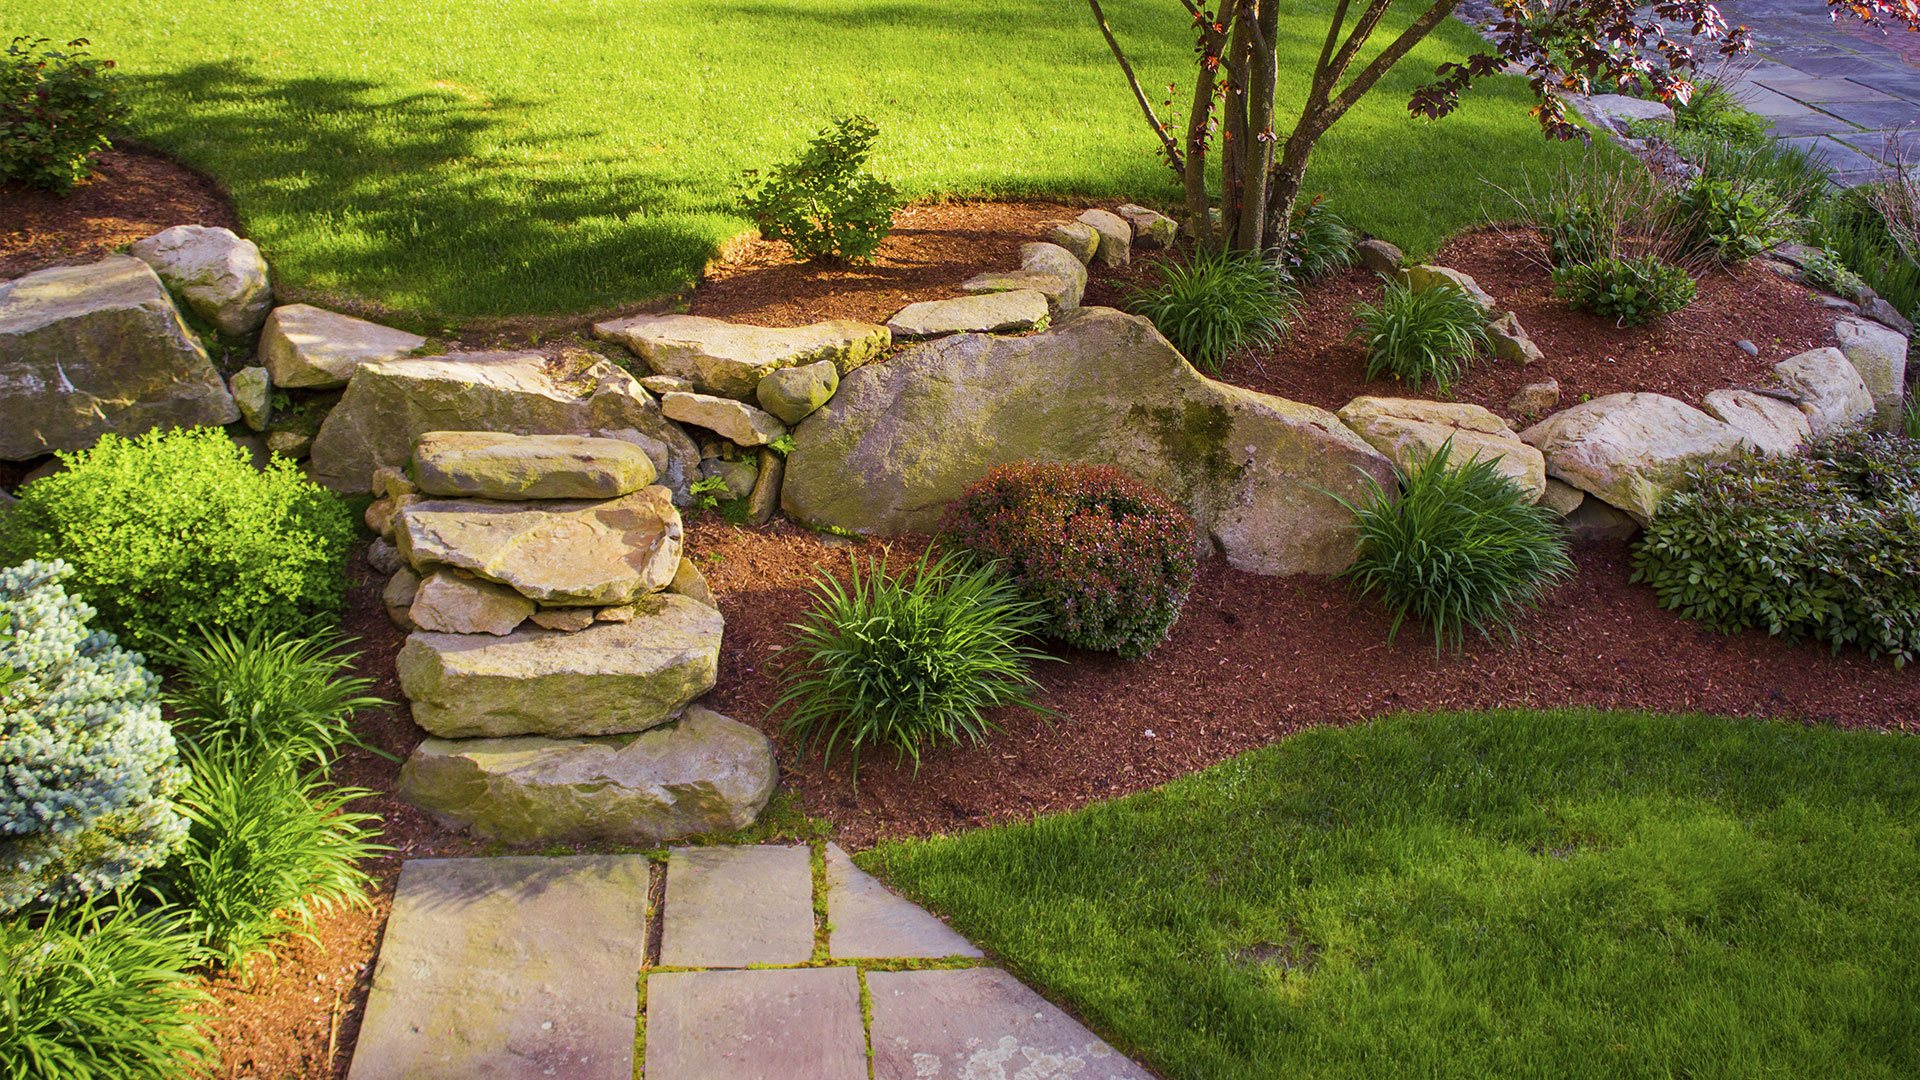 Home dieppe landscaping hardscaping and lawn care for Garden home design ltd